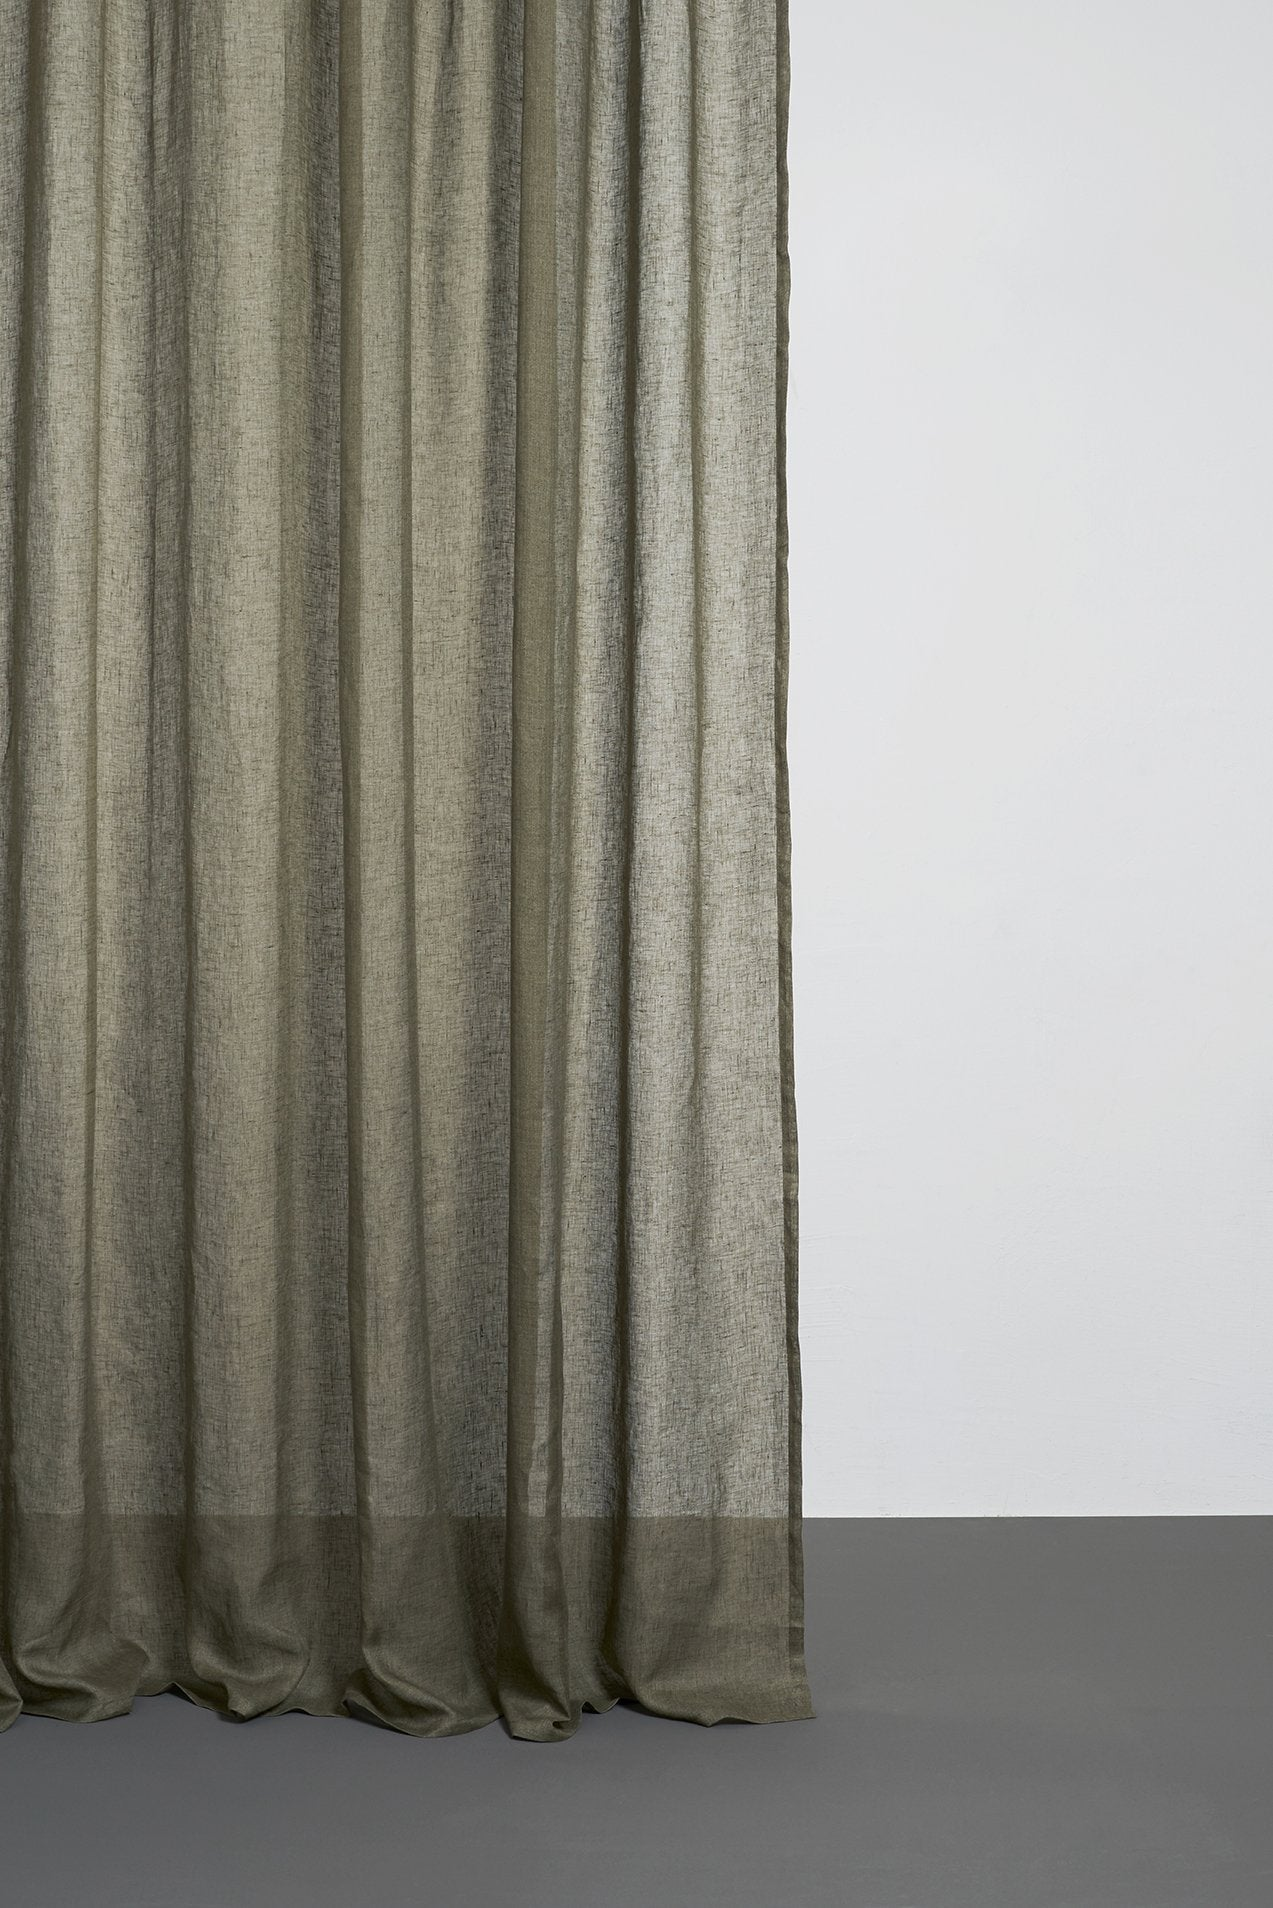 Olive Green Linen Curtains 300cm 118 Inches Extra Wide Zigzagzurich